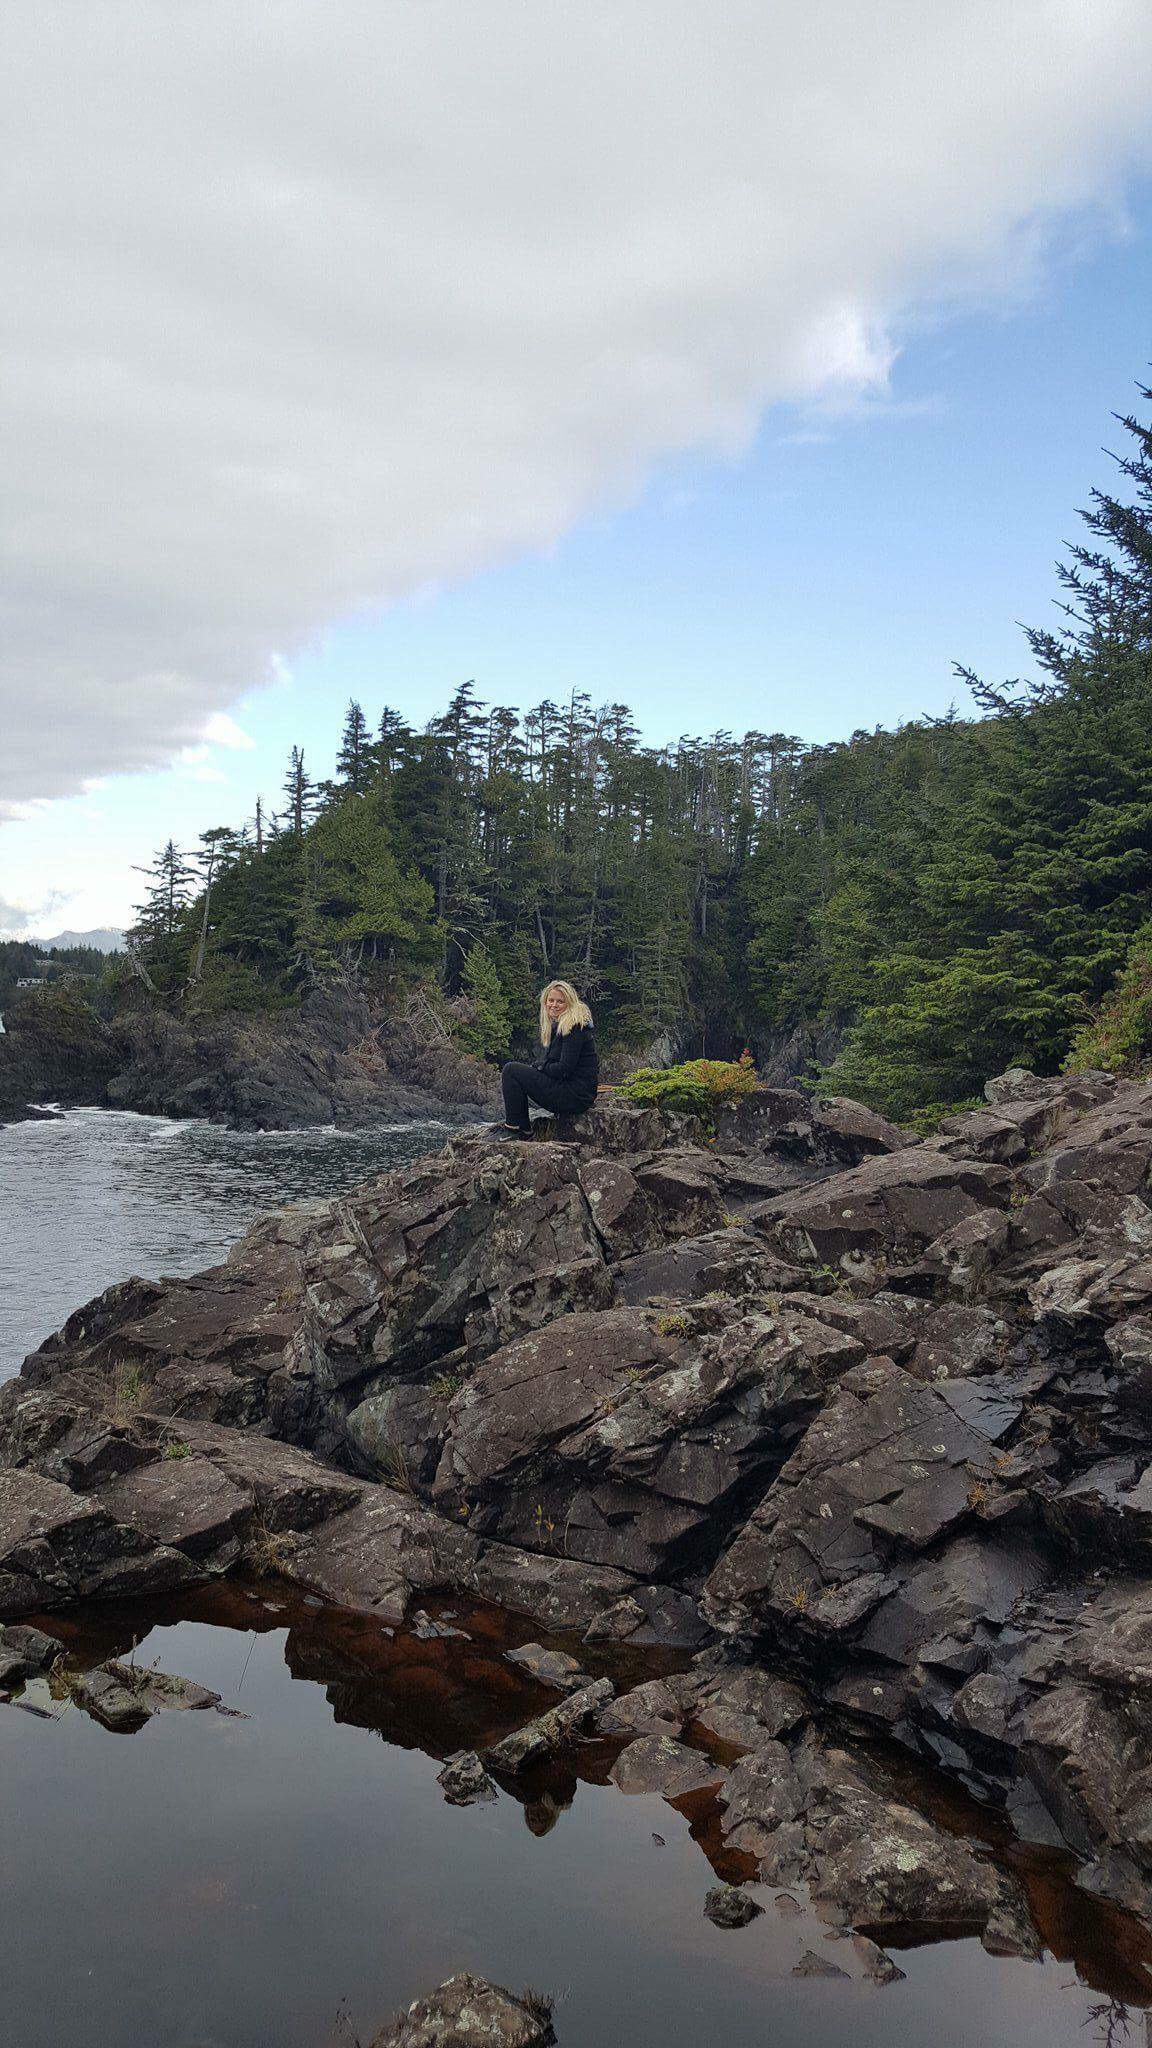 Laura on the Wild Pacific Trail, Vancouver Island